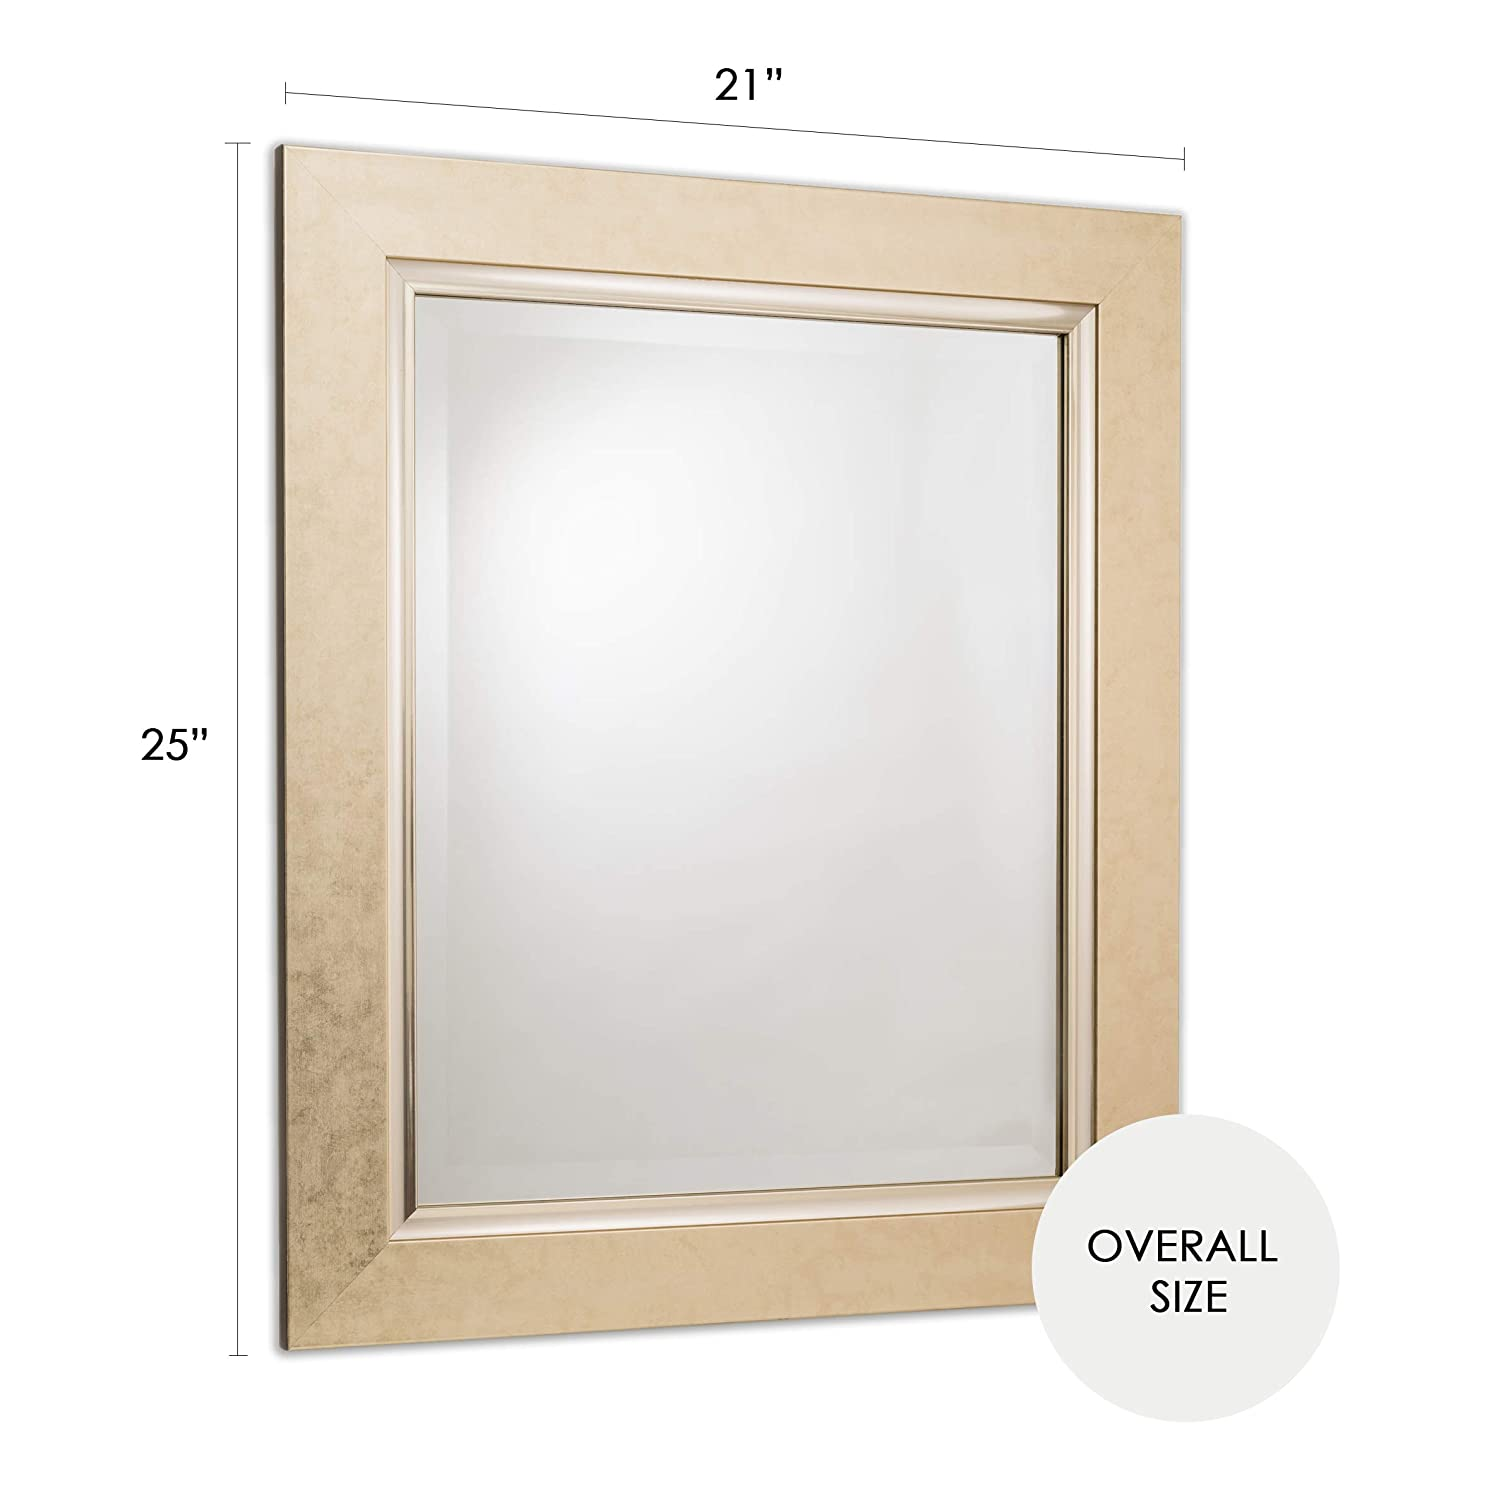 0dd8ca24f4a6c Amazon.com  Wall Mirror Decorative Vanity Bathroom Rectangular Vintage Gold  Beveled Frame 16x20  Home   Kitchen